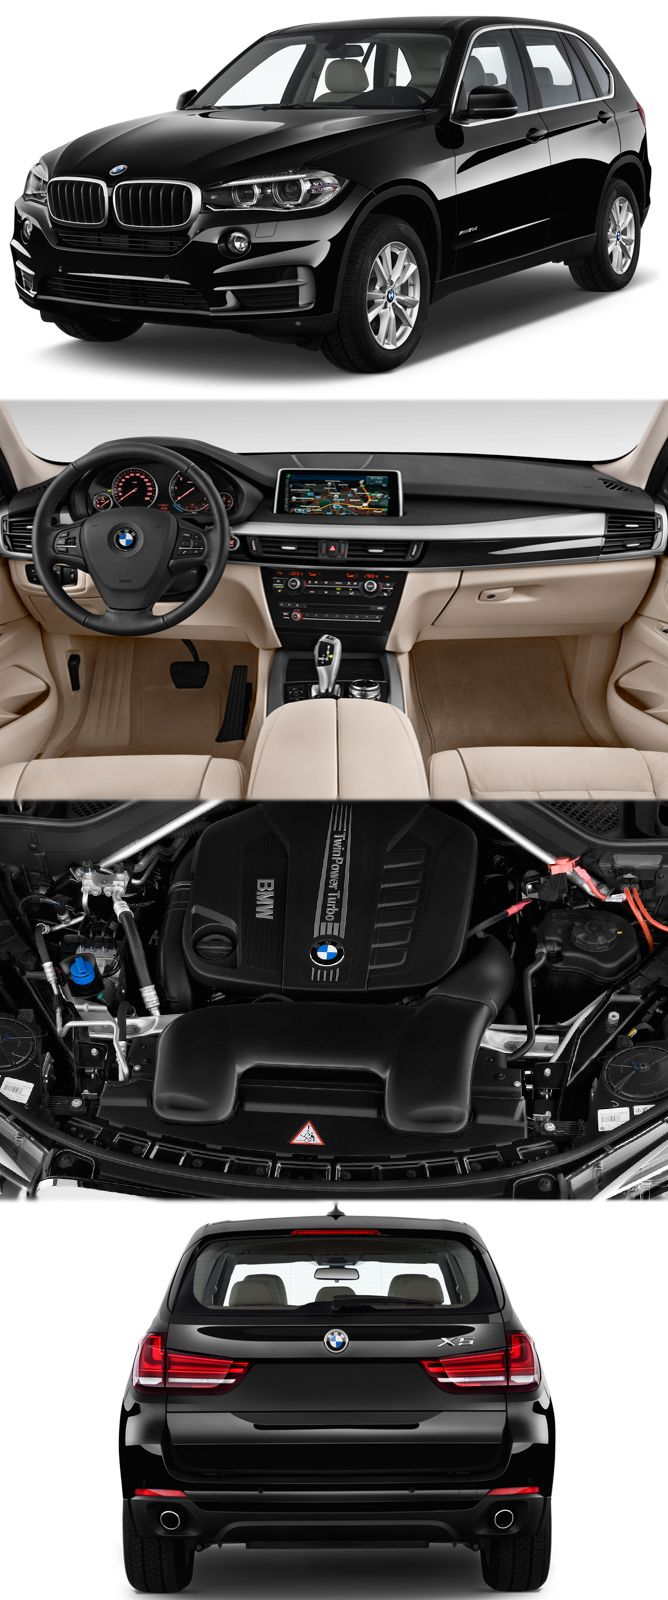 BMW X5 is one of the Top Choices for Mid Sized SUV For more details at: http://www.reconditionengines.co.uk/rec-model.asp?size=4.8&part=reconditioned-bmw-x5-engine&mo_id=1047